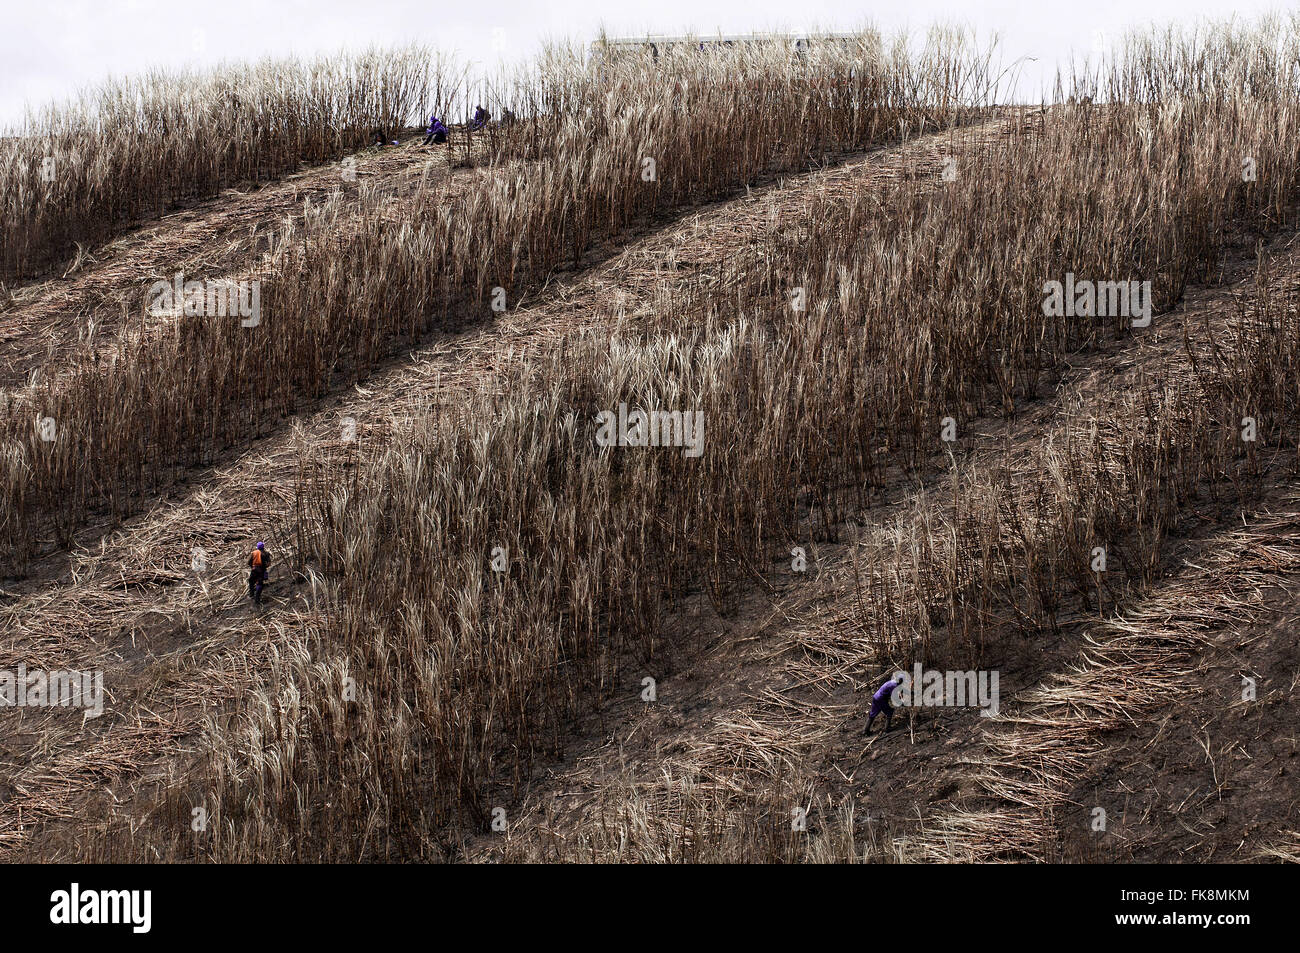 Cutters cane sugar - sugar plantation on the edge of AL-101 highway - Stock Image